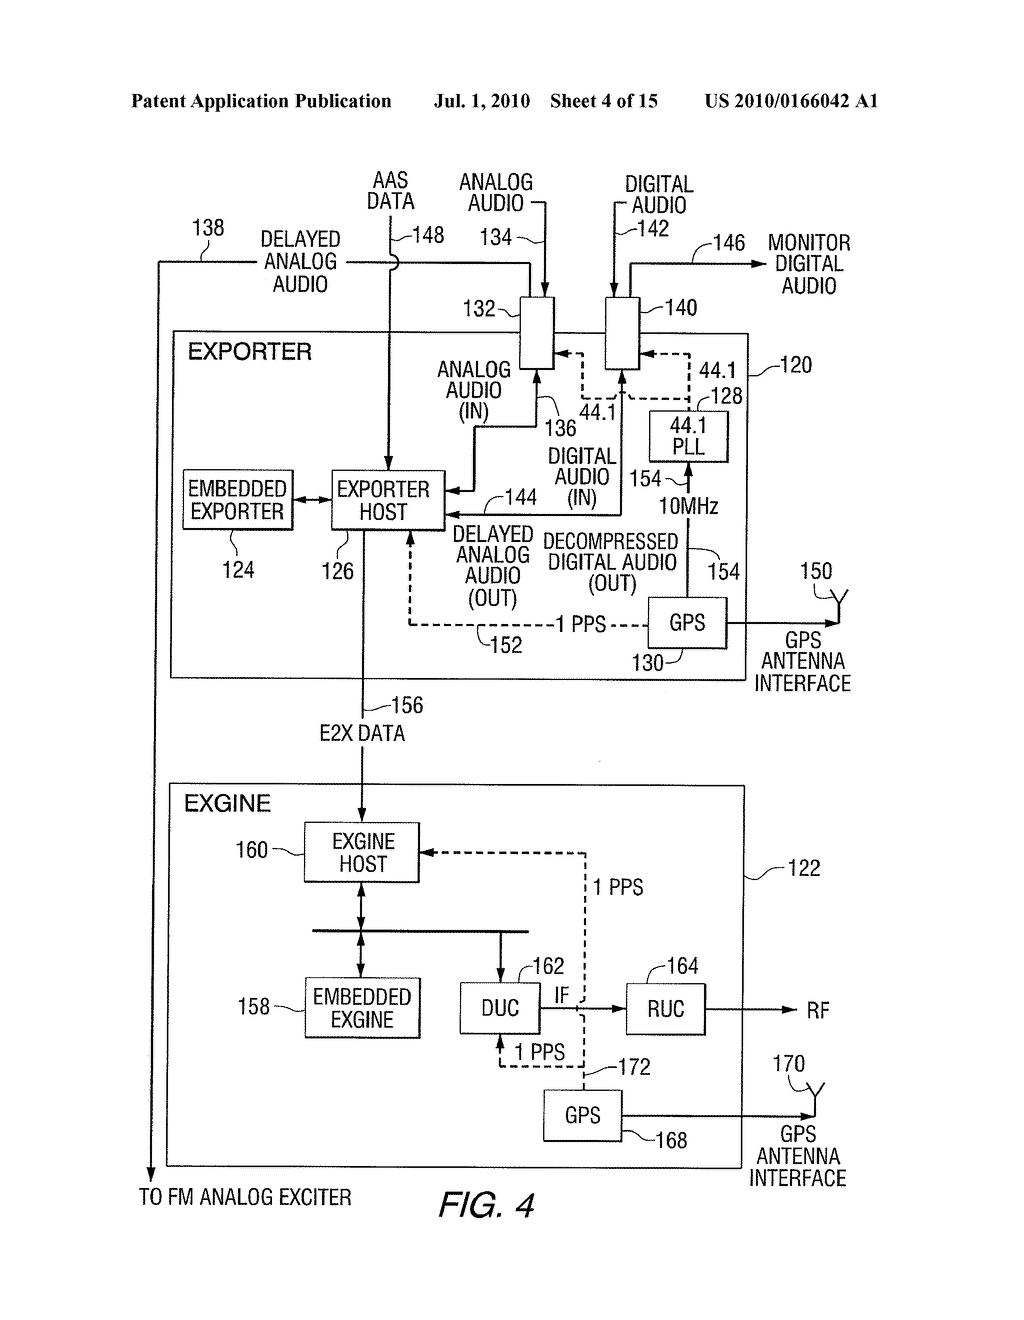 synchronization of separated platforms in an hd radio broadcast cobra cb radio schematics synchronization of separated platforms in an hd radio broadcast single frequency network diagram, schematic, and image 05